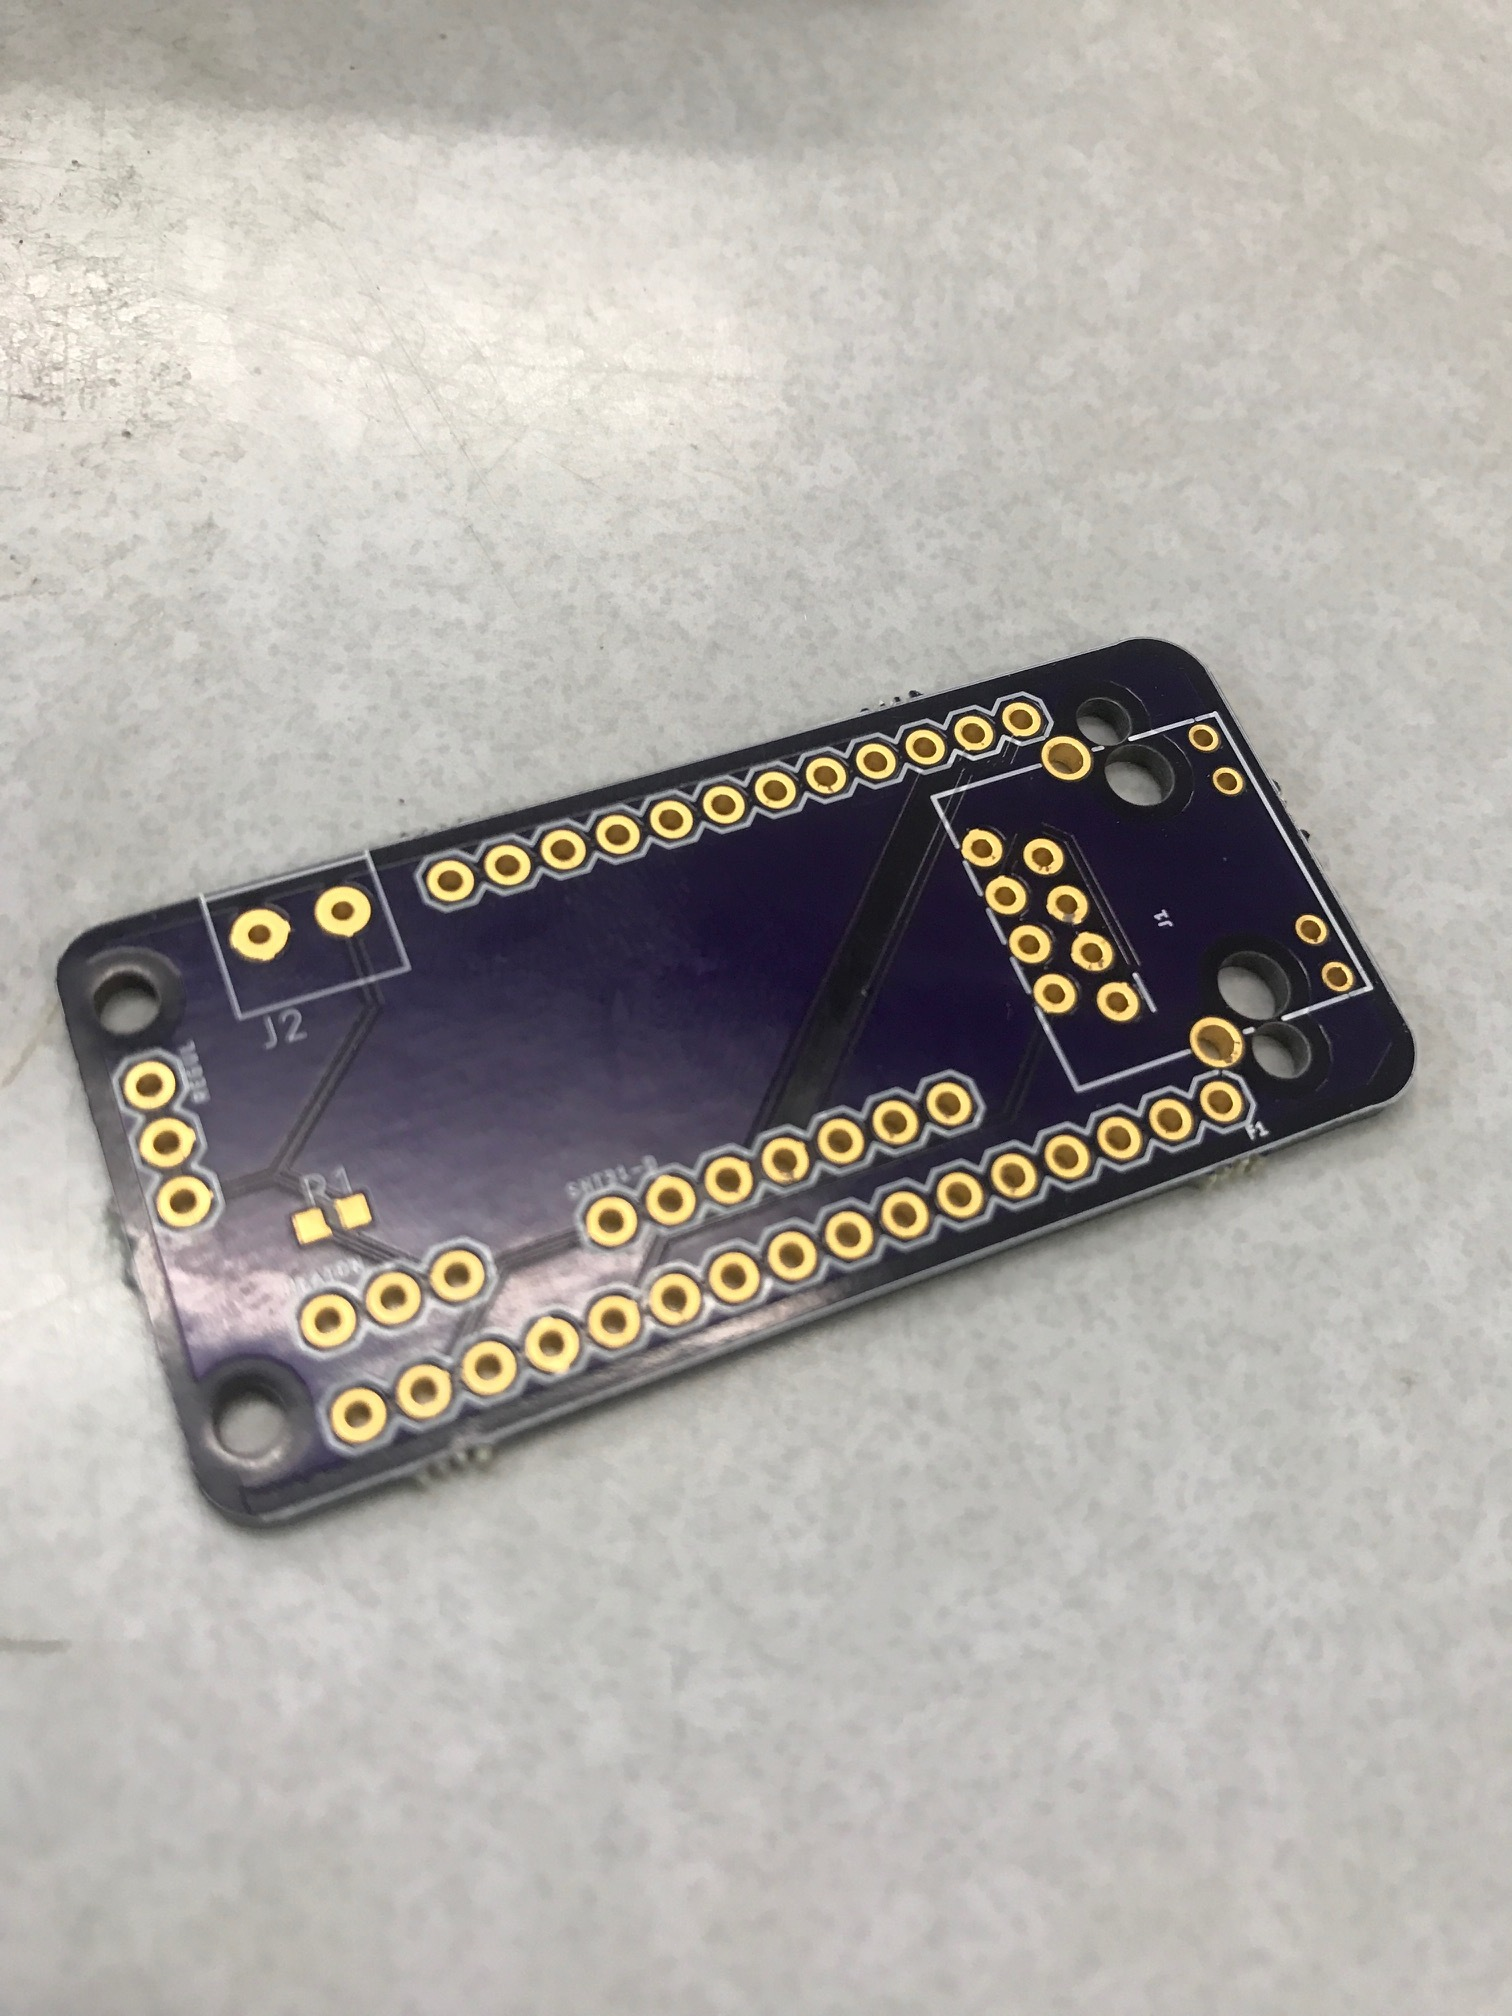 This is our custom PCB, which is linked above, without any parts on it yet. This is the best place to start!